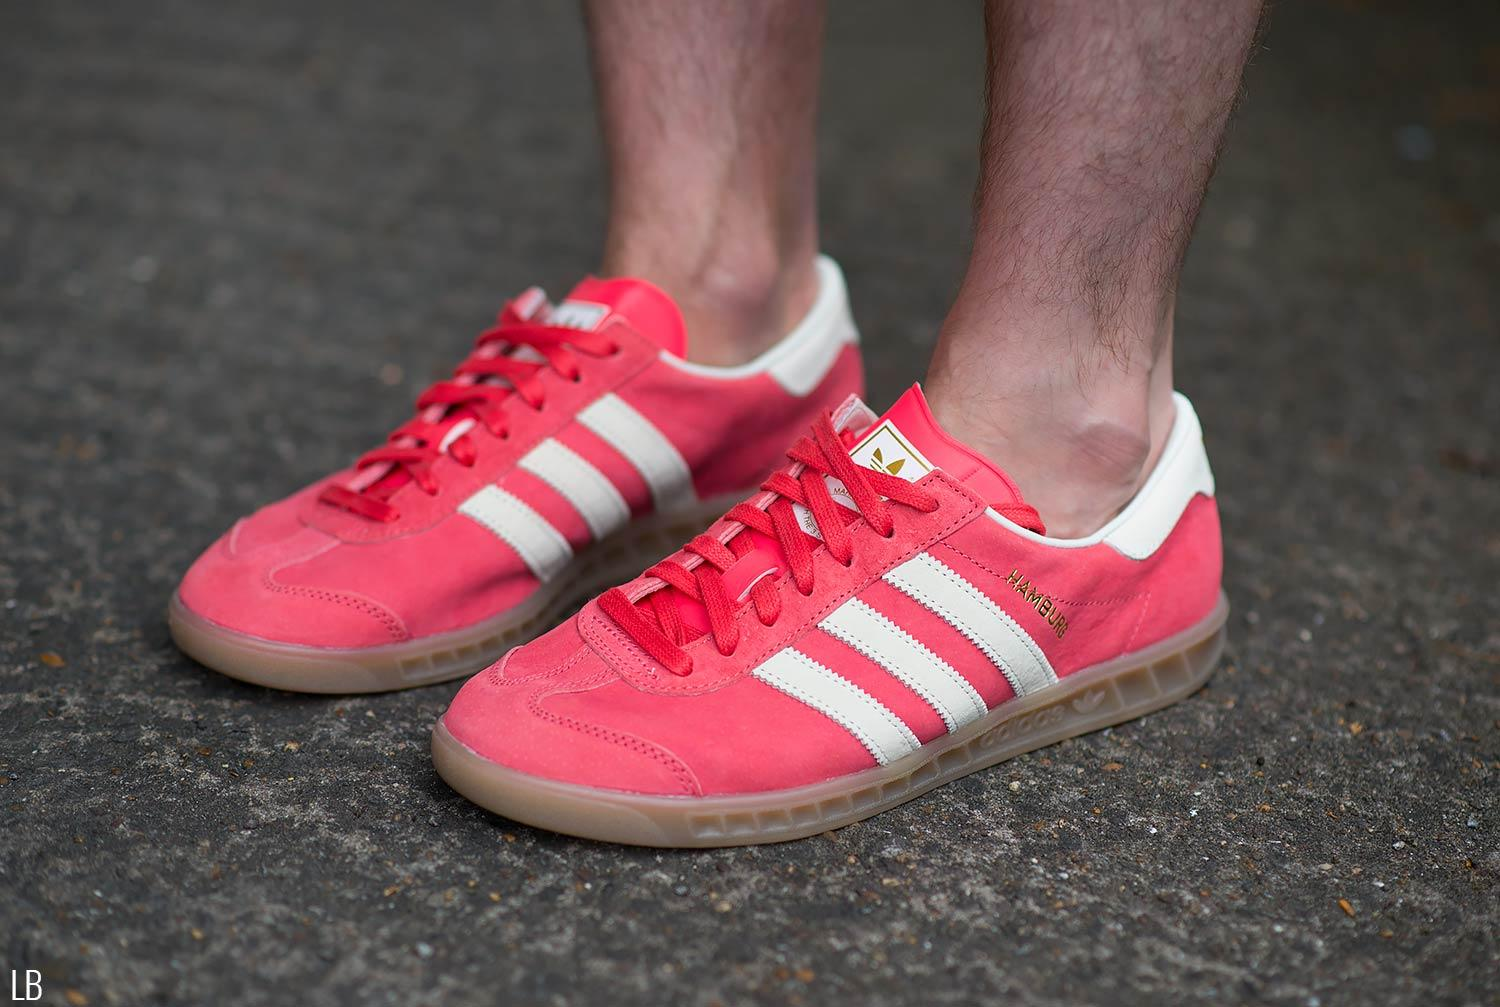 Men's Adidas Hamburg Shock Red Gum Trainers Sneakers Review 5